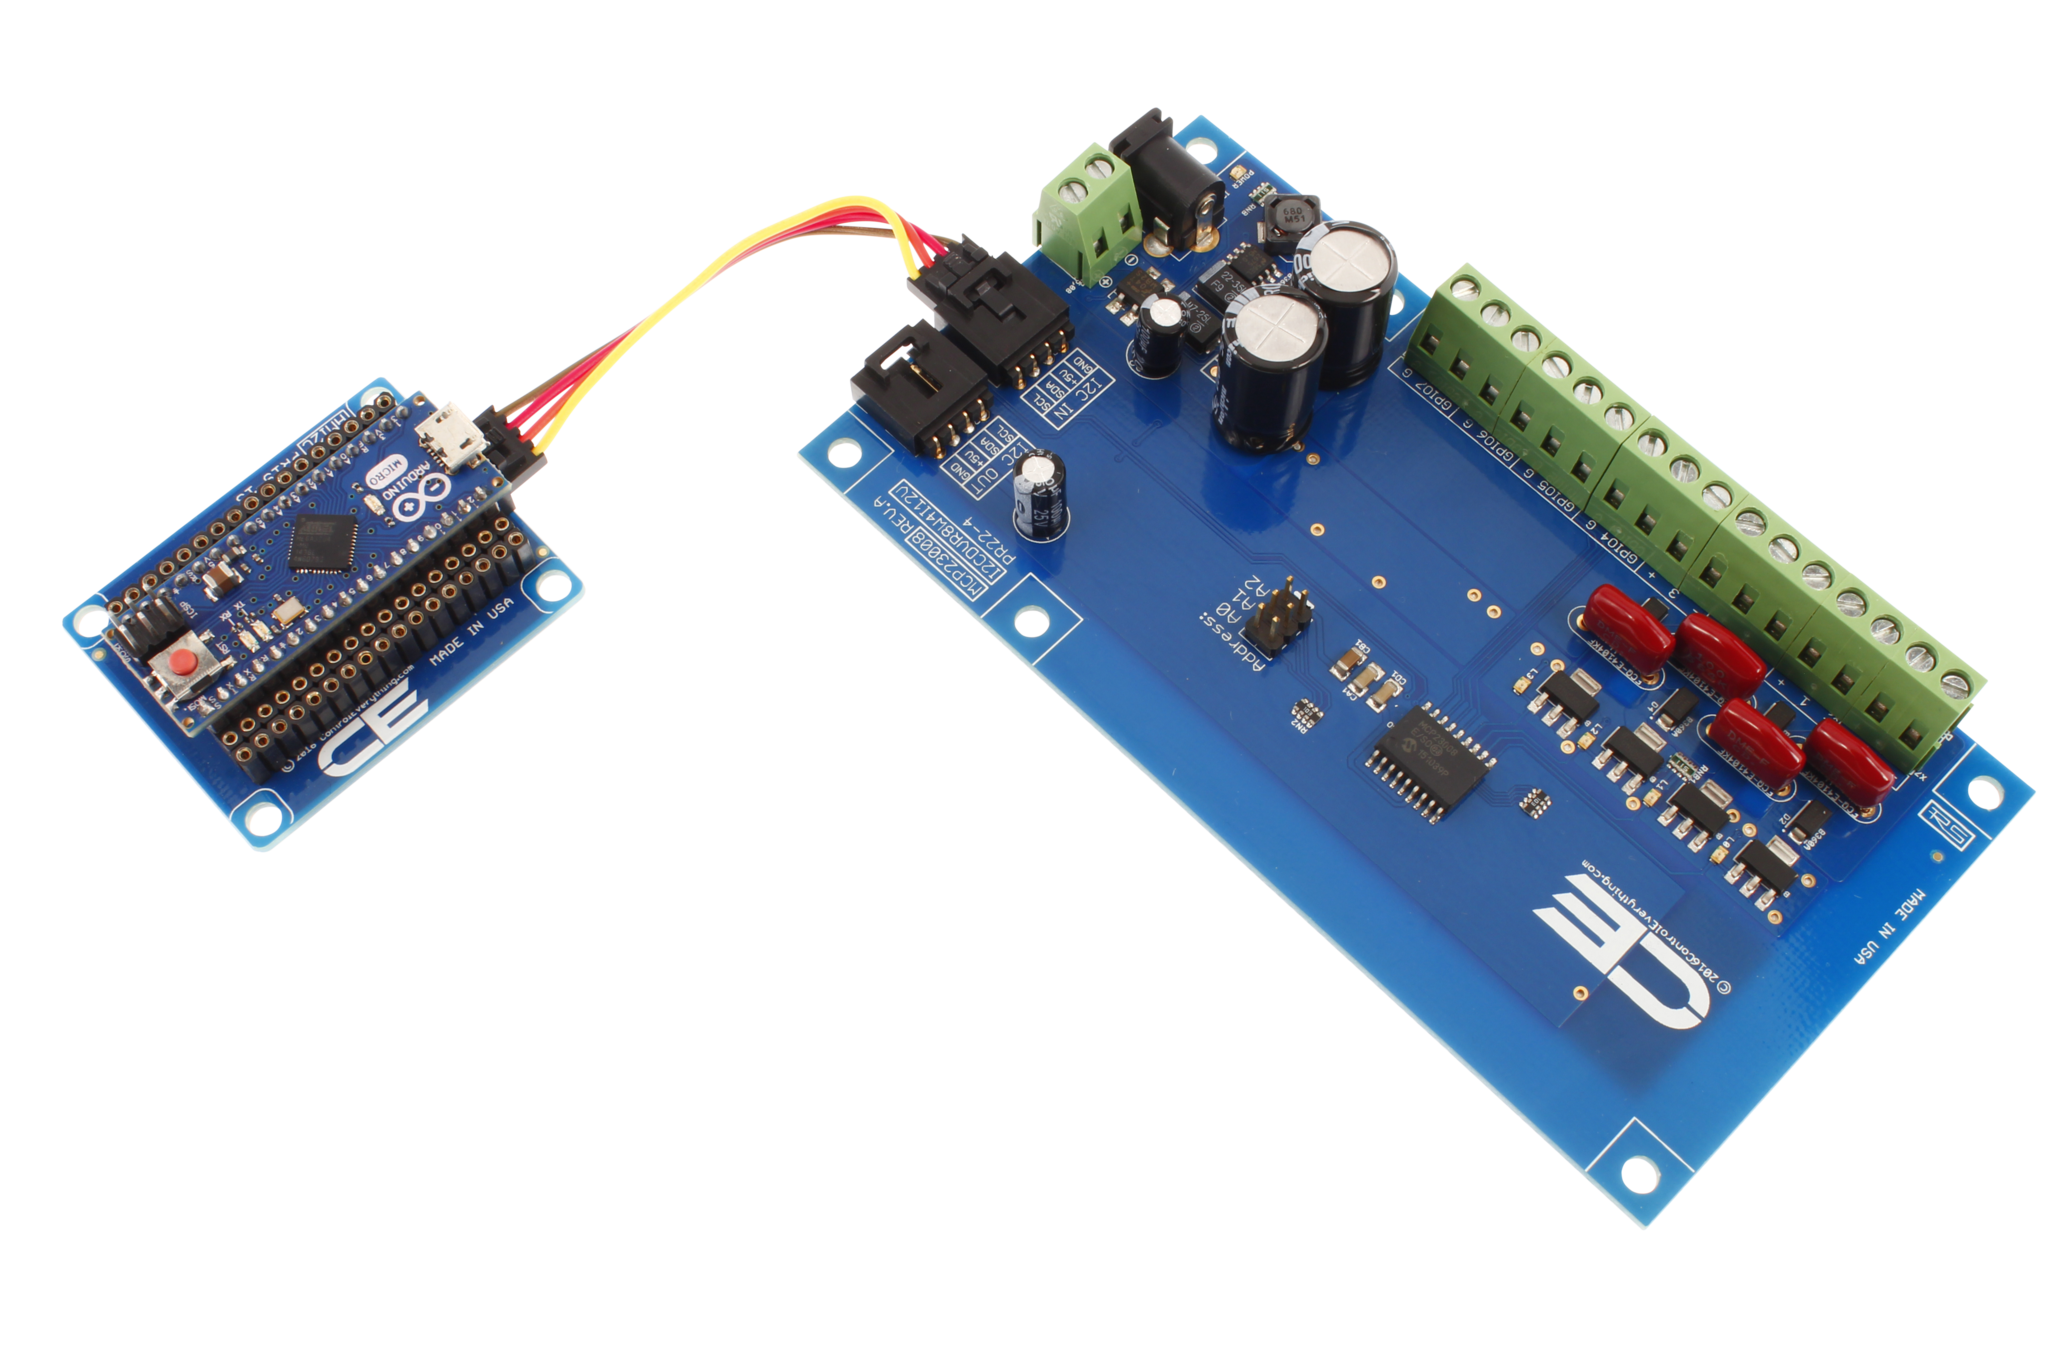 Mcp23008 4 Channel 8w 12v Fet Solenoid Driver Valve Controller Arduino Circuit To Control 1 Cylinder 2 Valves Using Gpio With